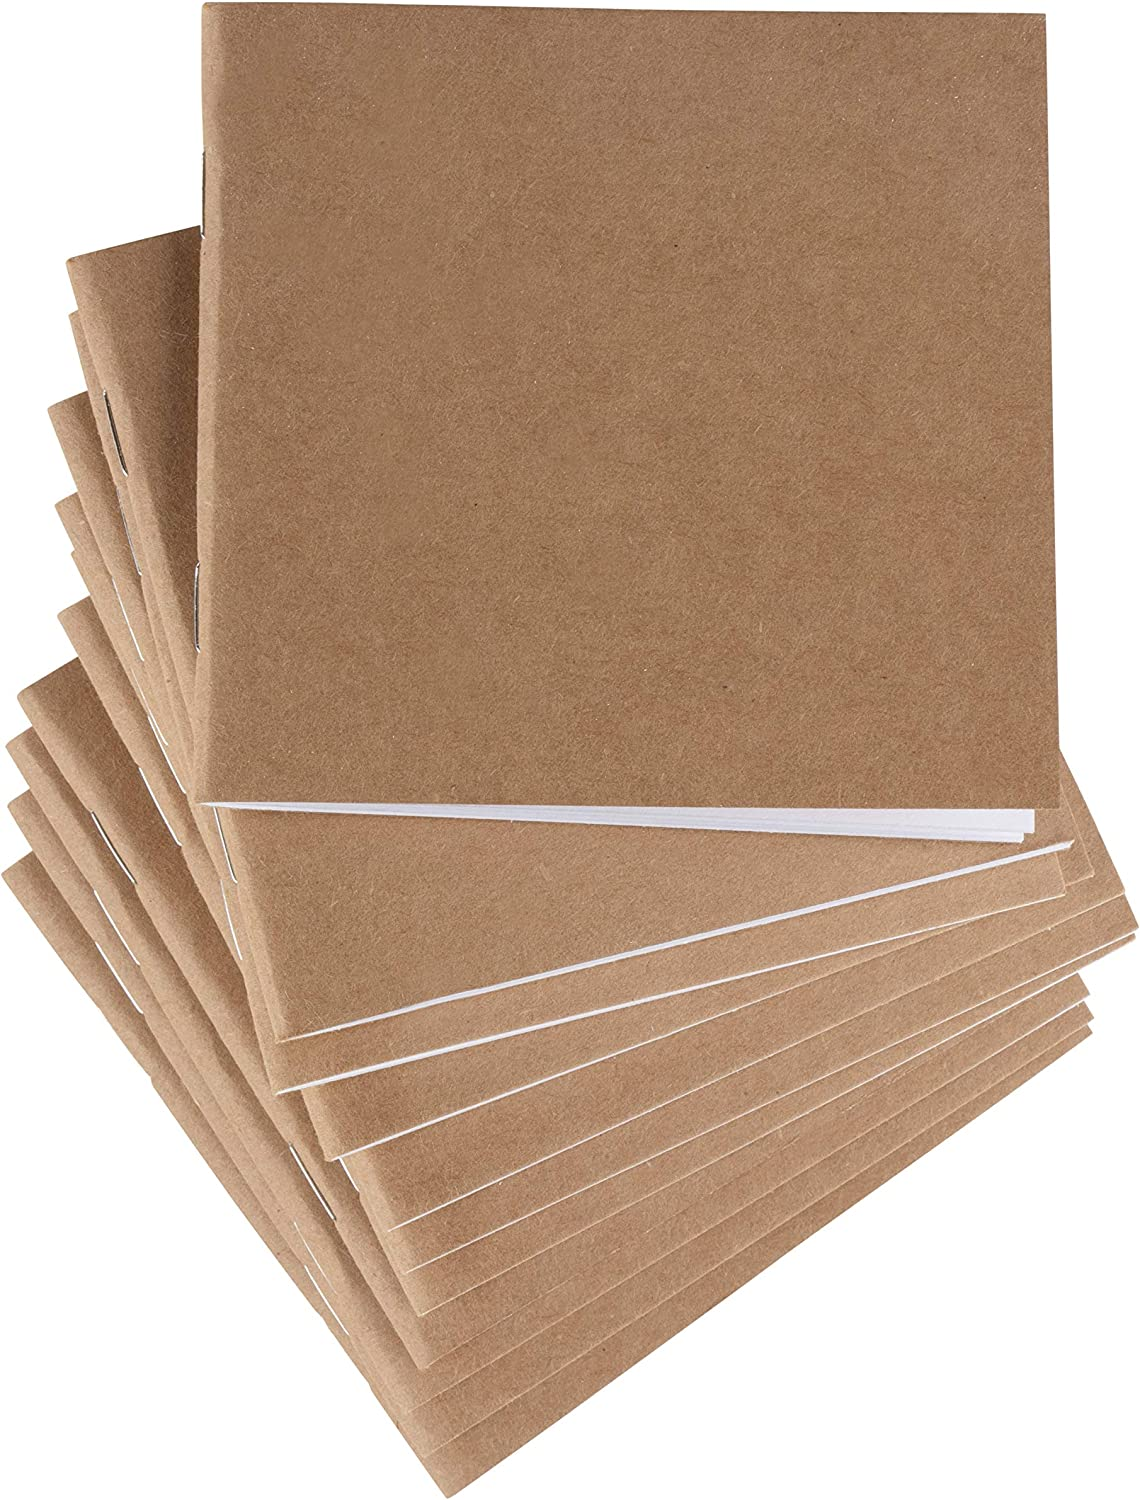 48-Pack Kraft Mini Notebooks Bulk, Unlined Blank Travel Journals Small, for Students, Kids, Class Projects, Brown Cover, 4.1 x 4.2 Inches, 24 Sheets Each